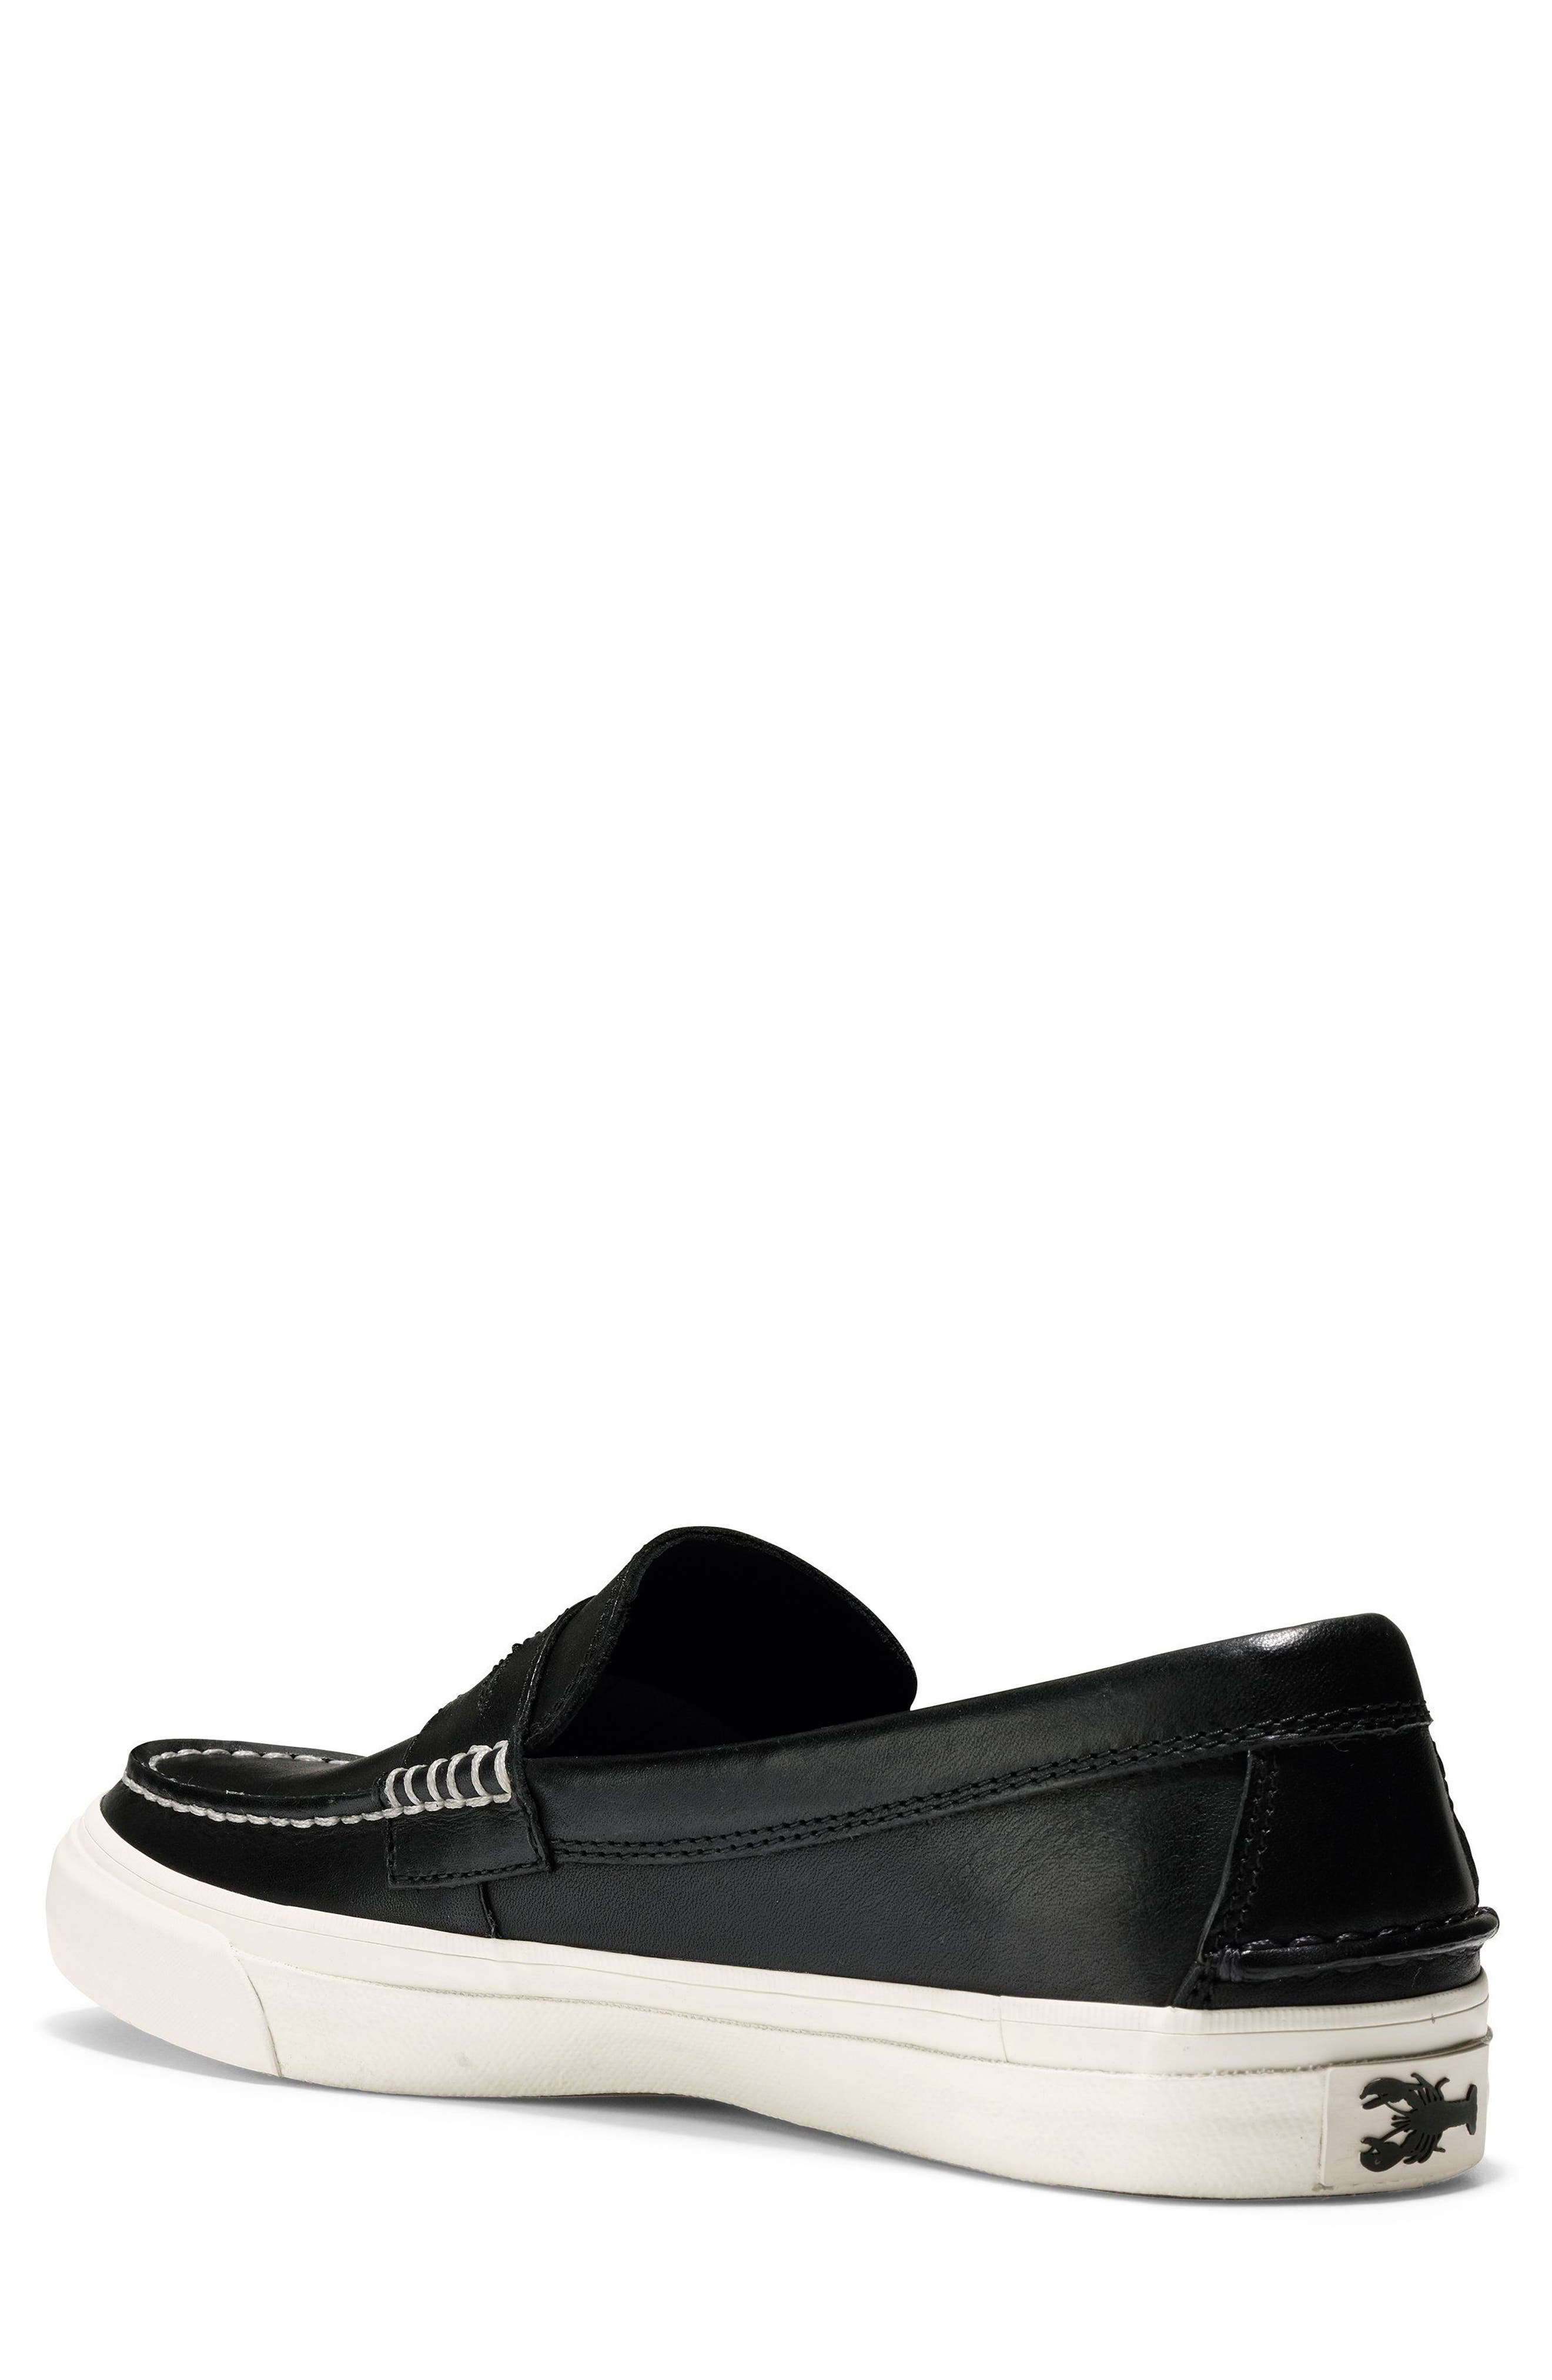 Pinch Weekend LX Penny Loafer,                             Alternate thumbnail 2, color,                             Black/ White